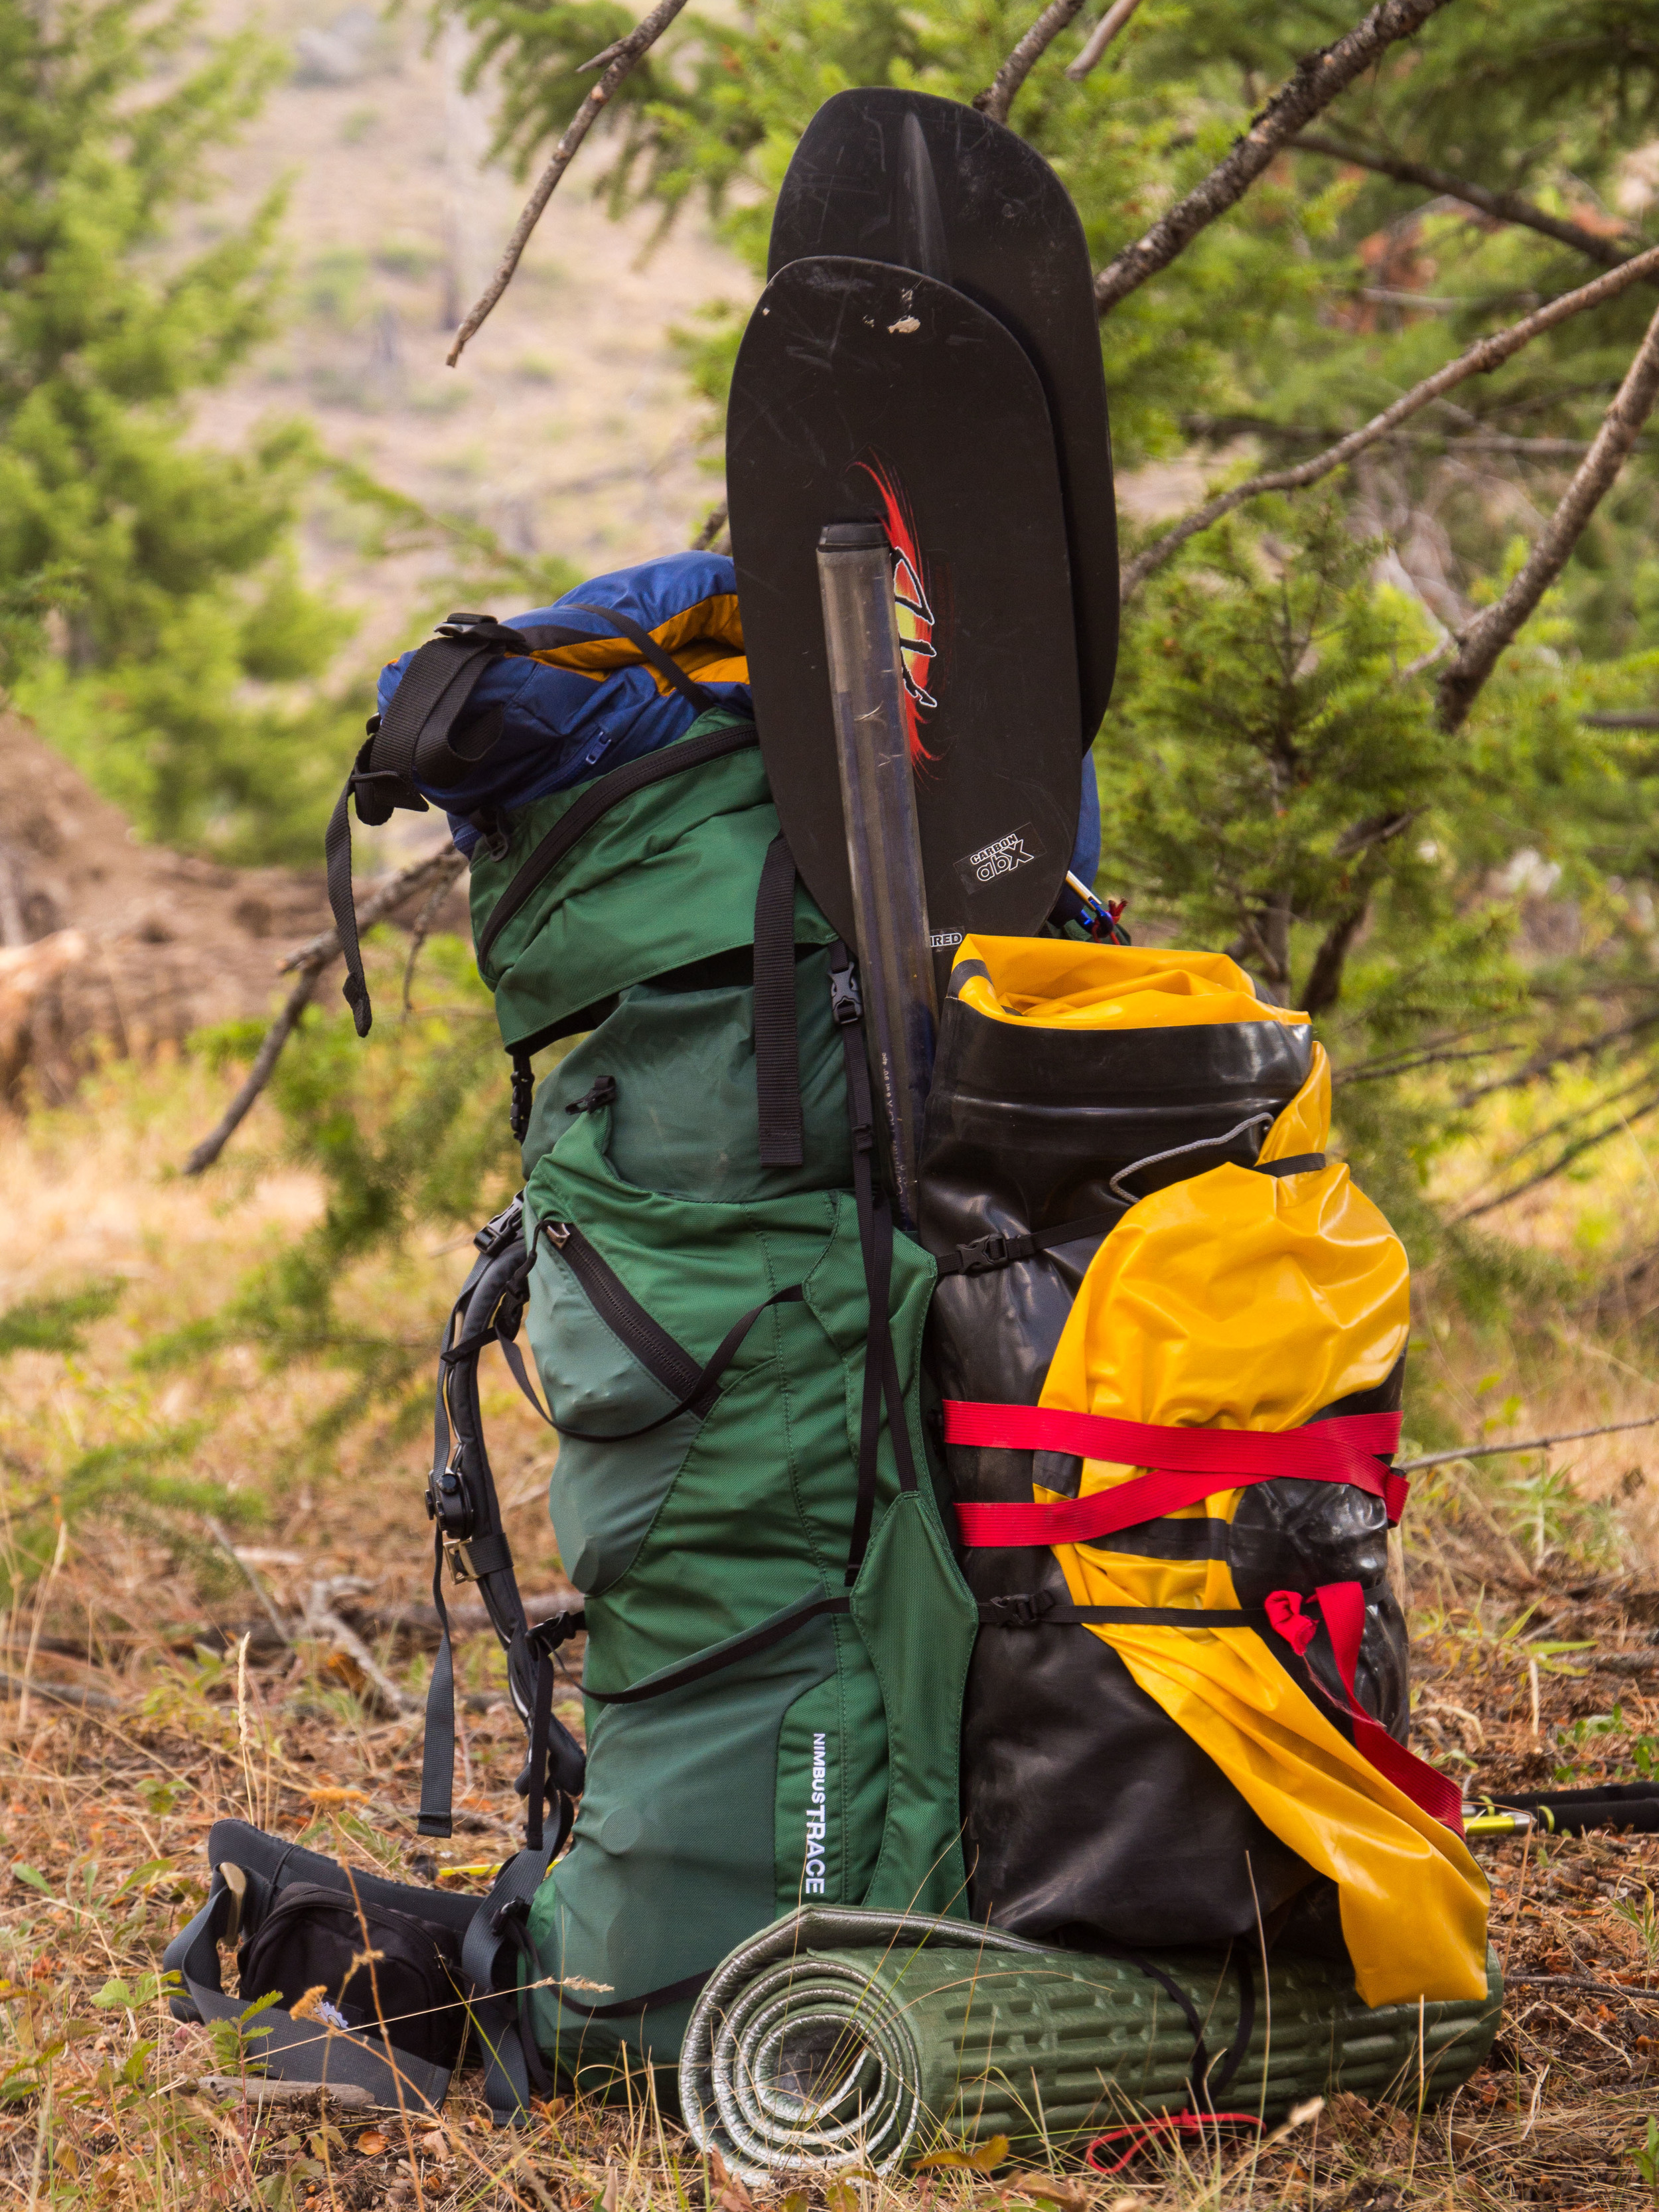 A loaded down Granite Gear pack full of packrafting gear. This is not ultralight.